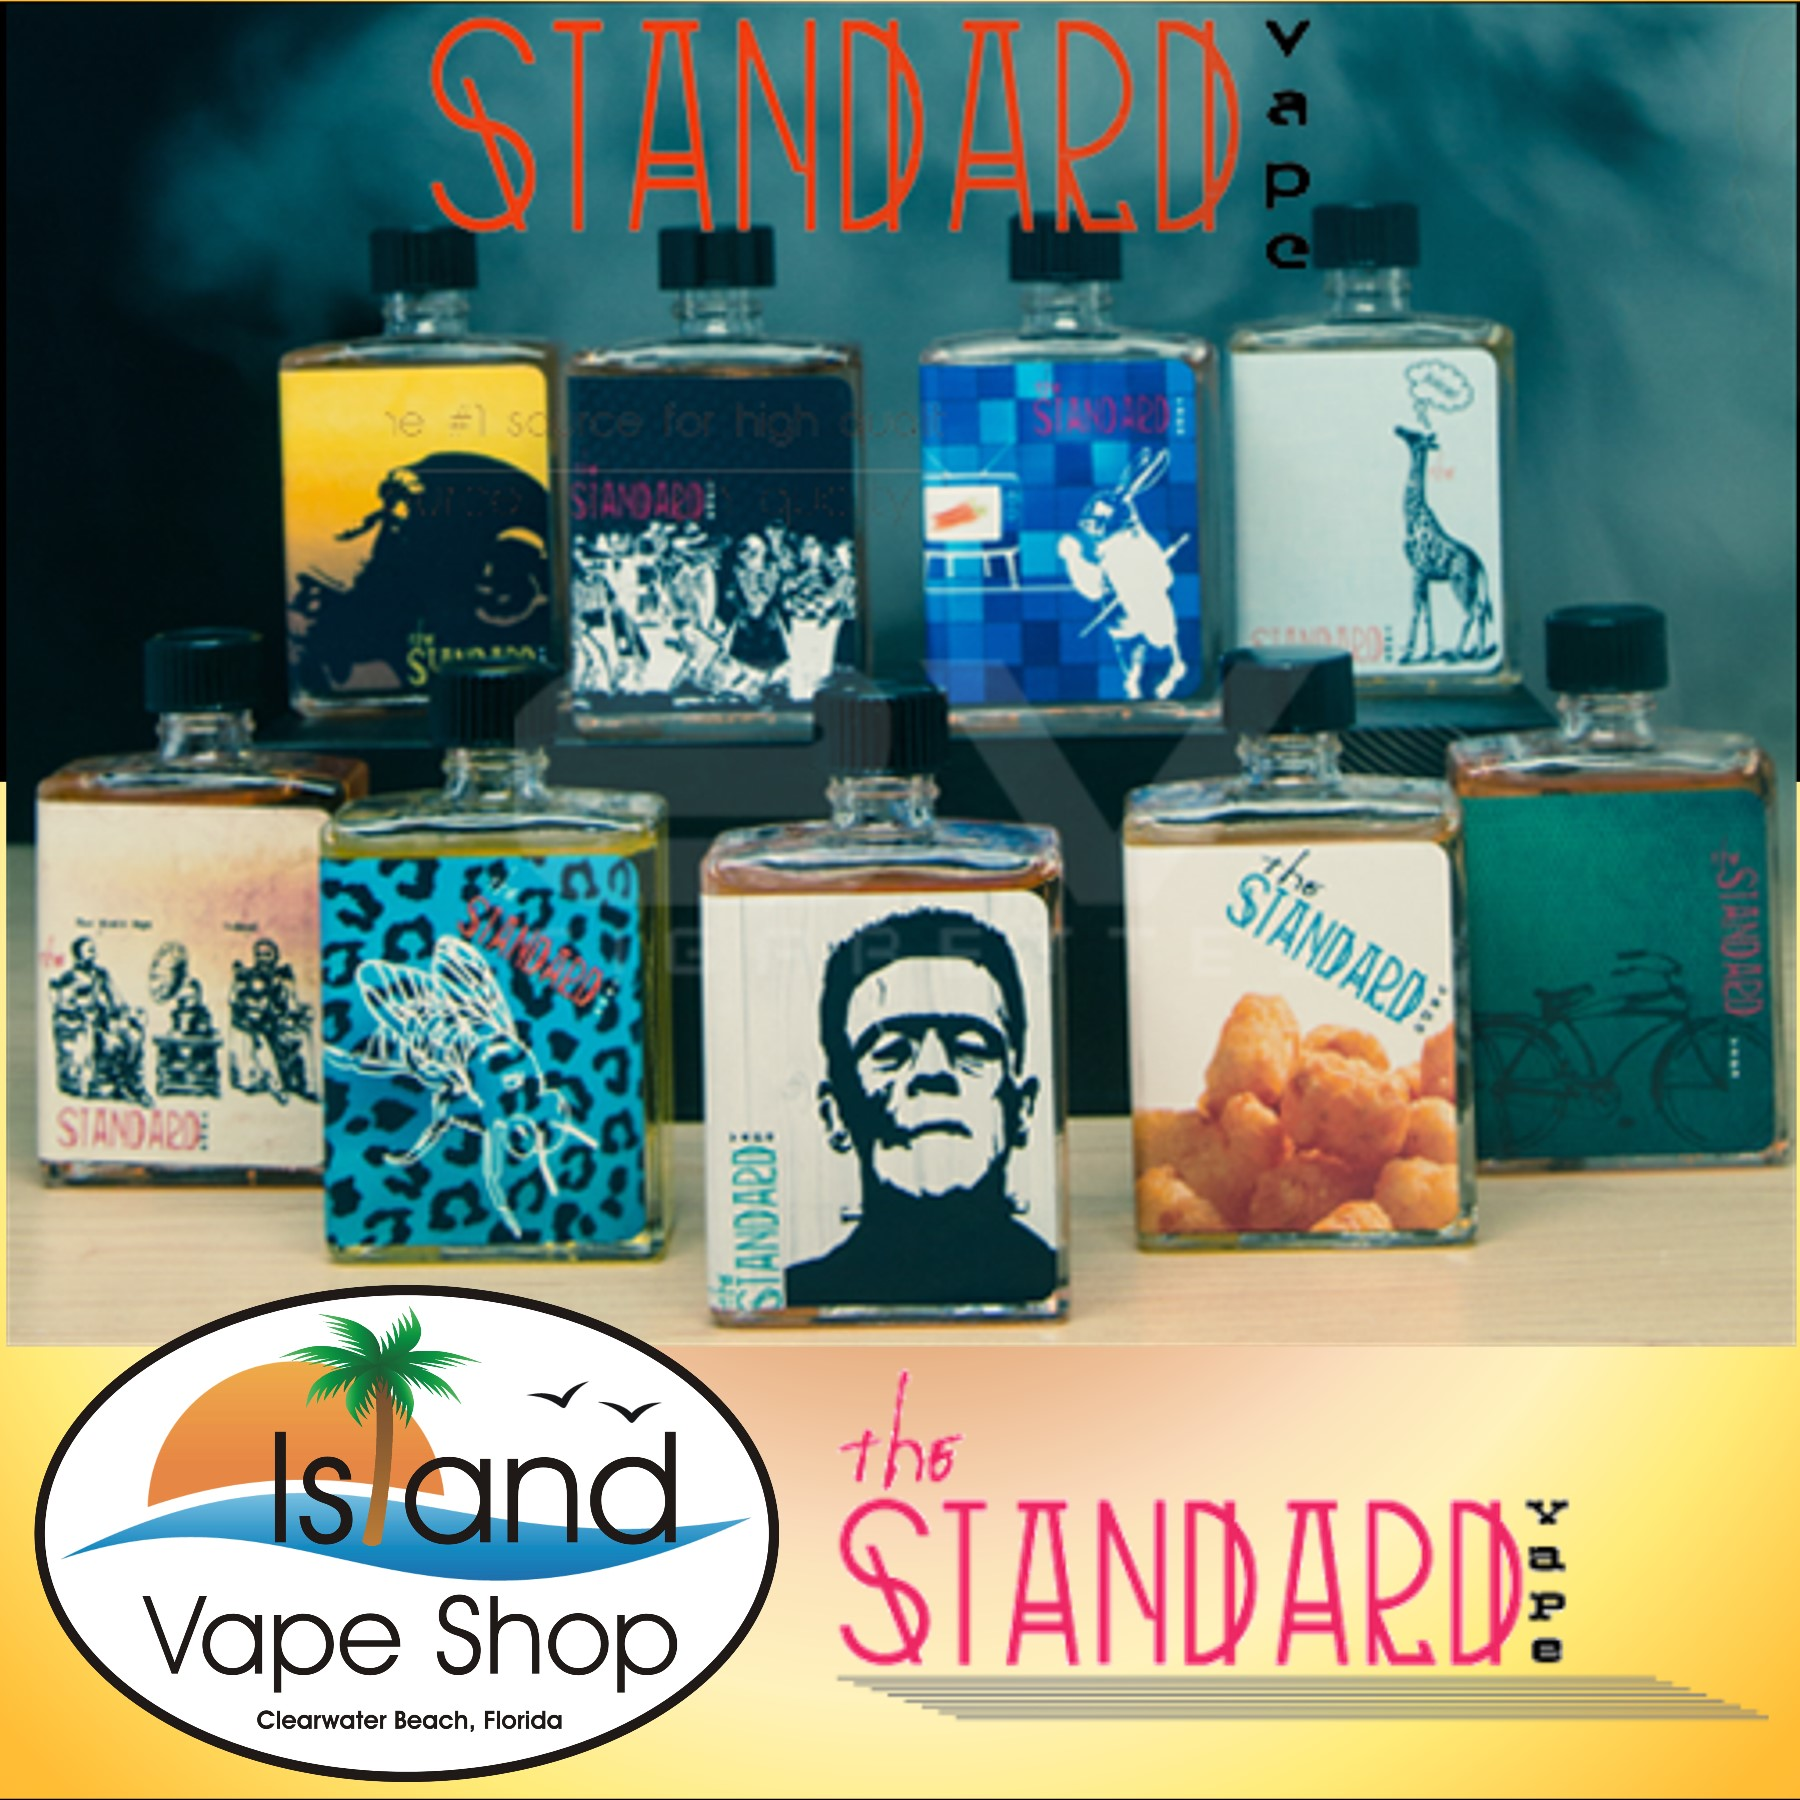 island_vape_shop_clearwater_beach_ecig_eliquid_the_stand_vape_vapor_juice.jpg